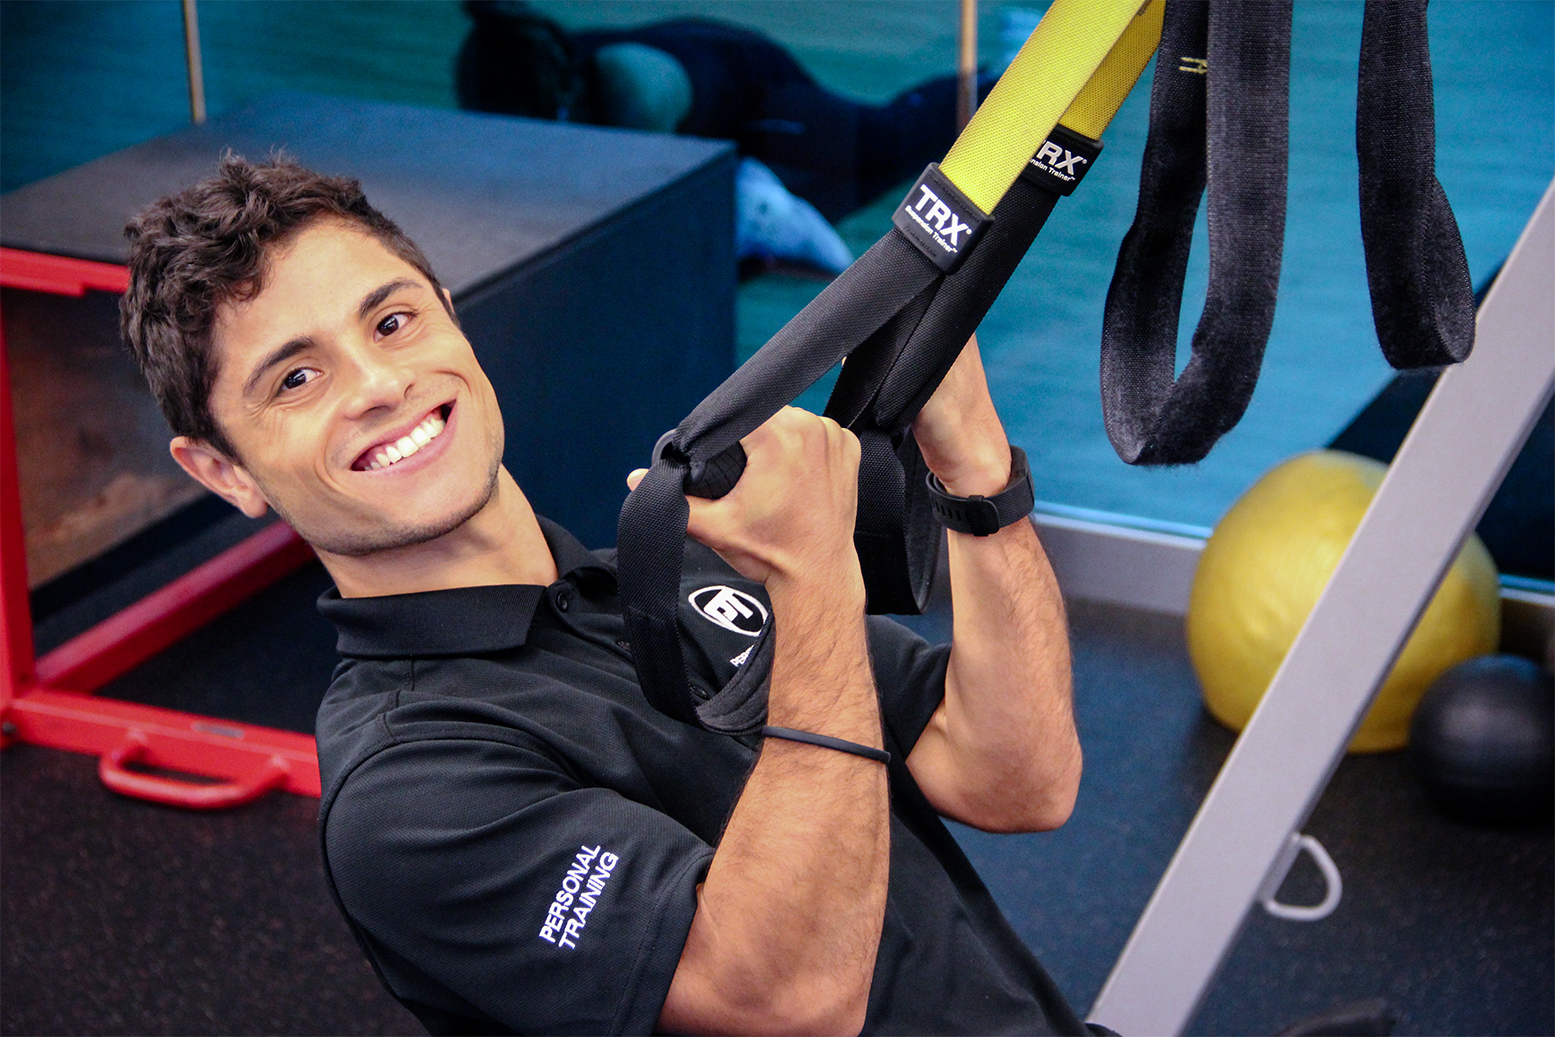 GHF gym personal trainer